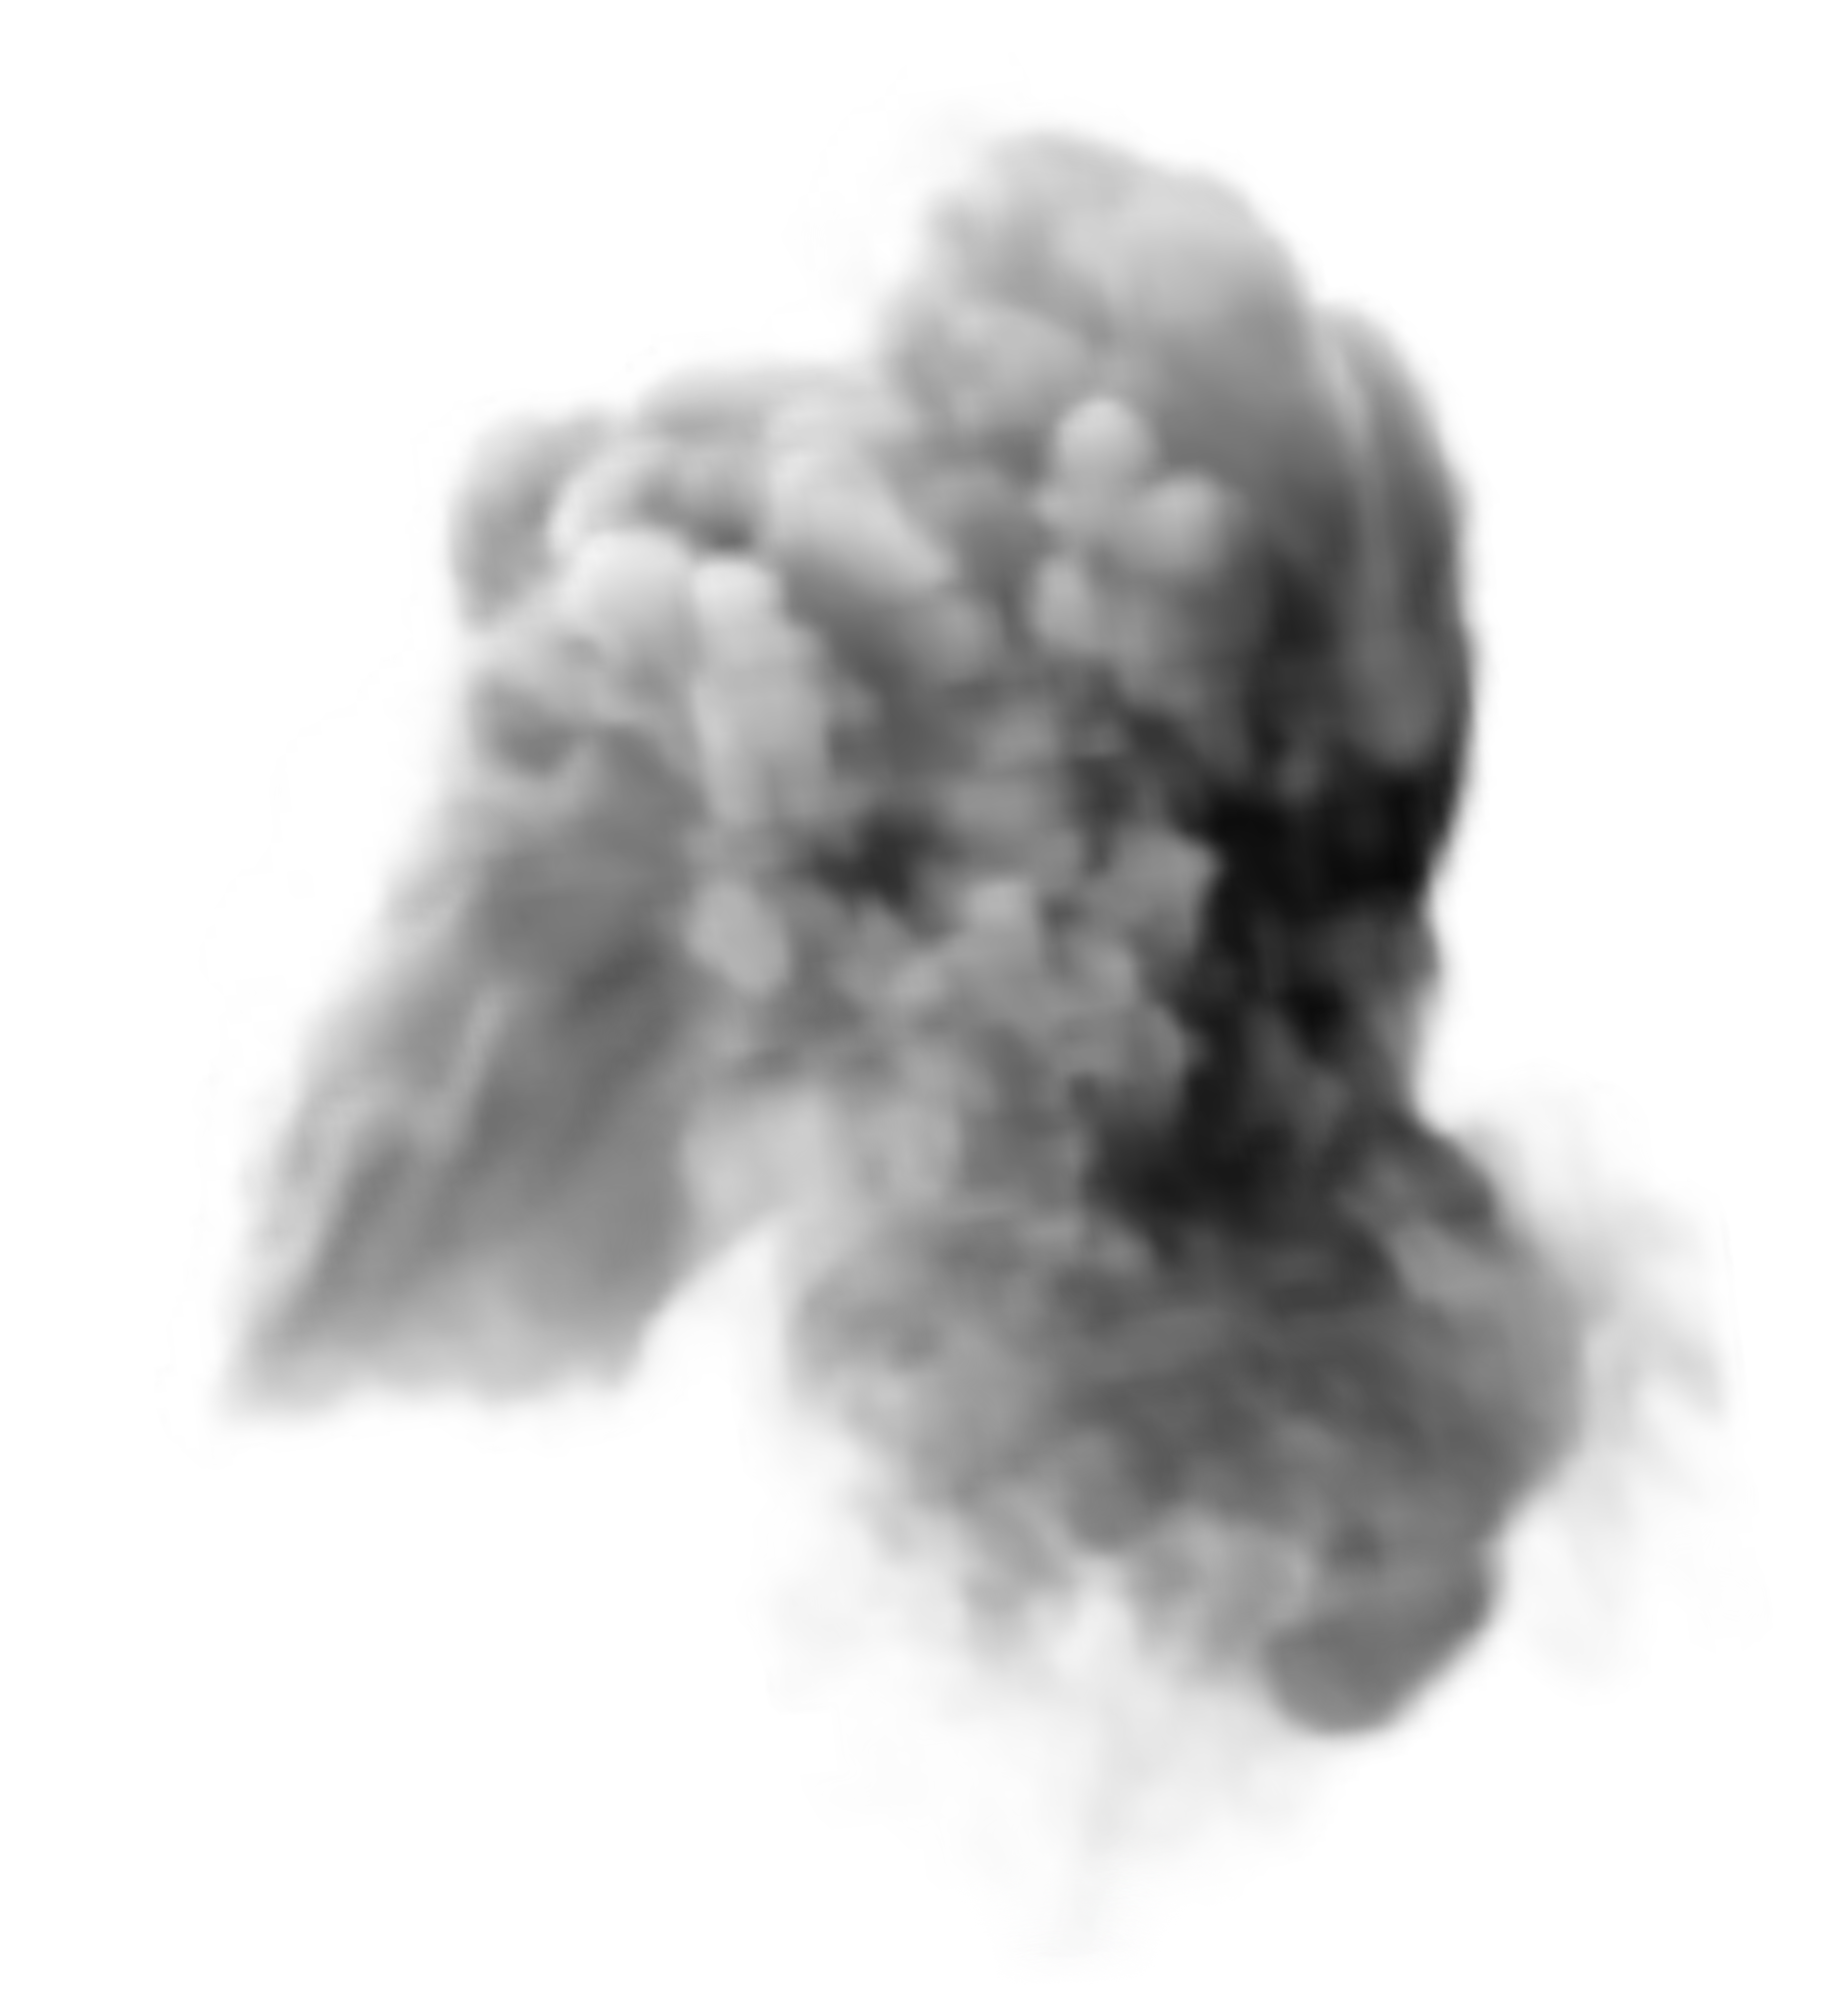 Large image gallery yopriceville. Smoke explosion png